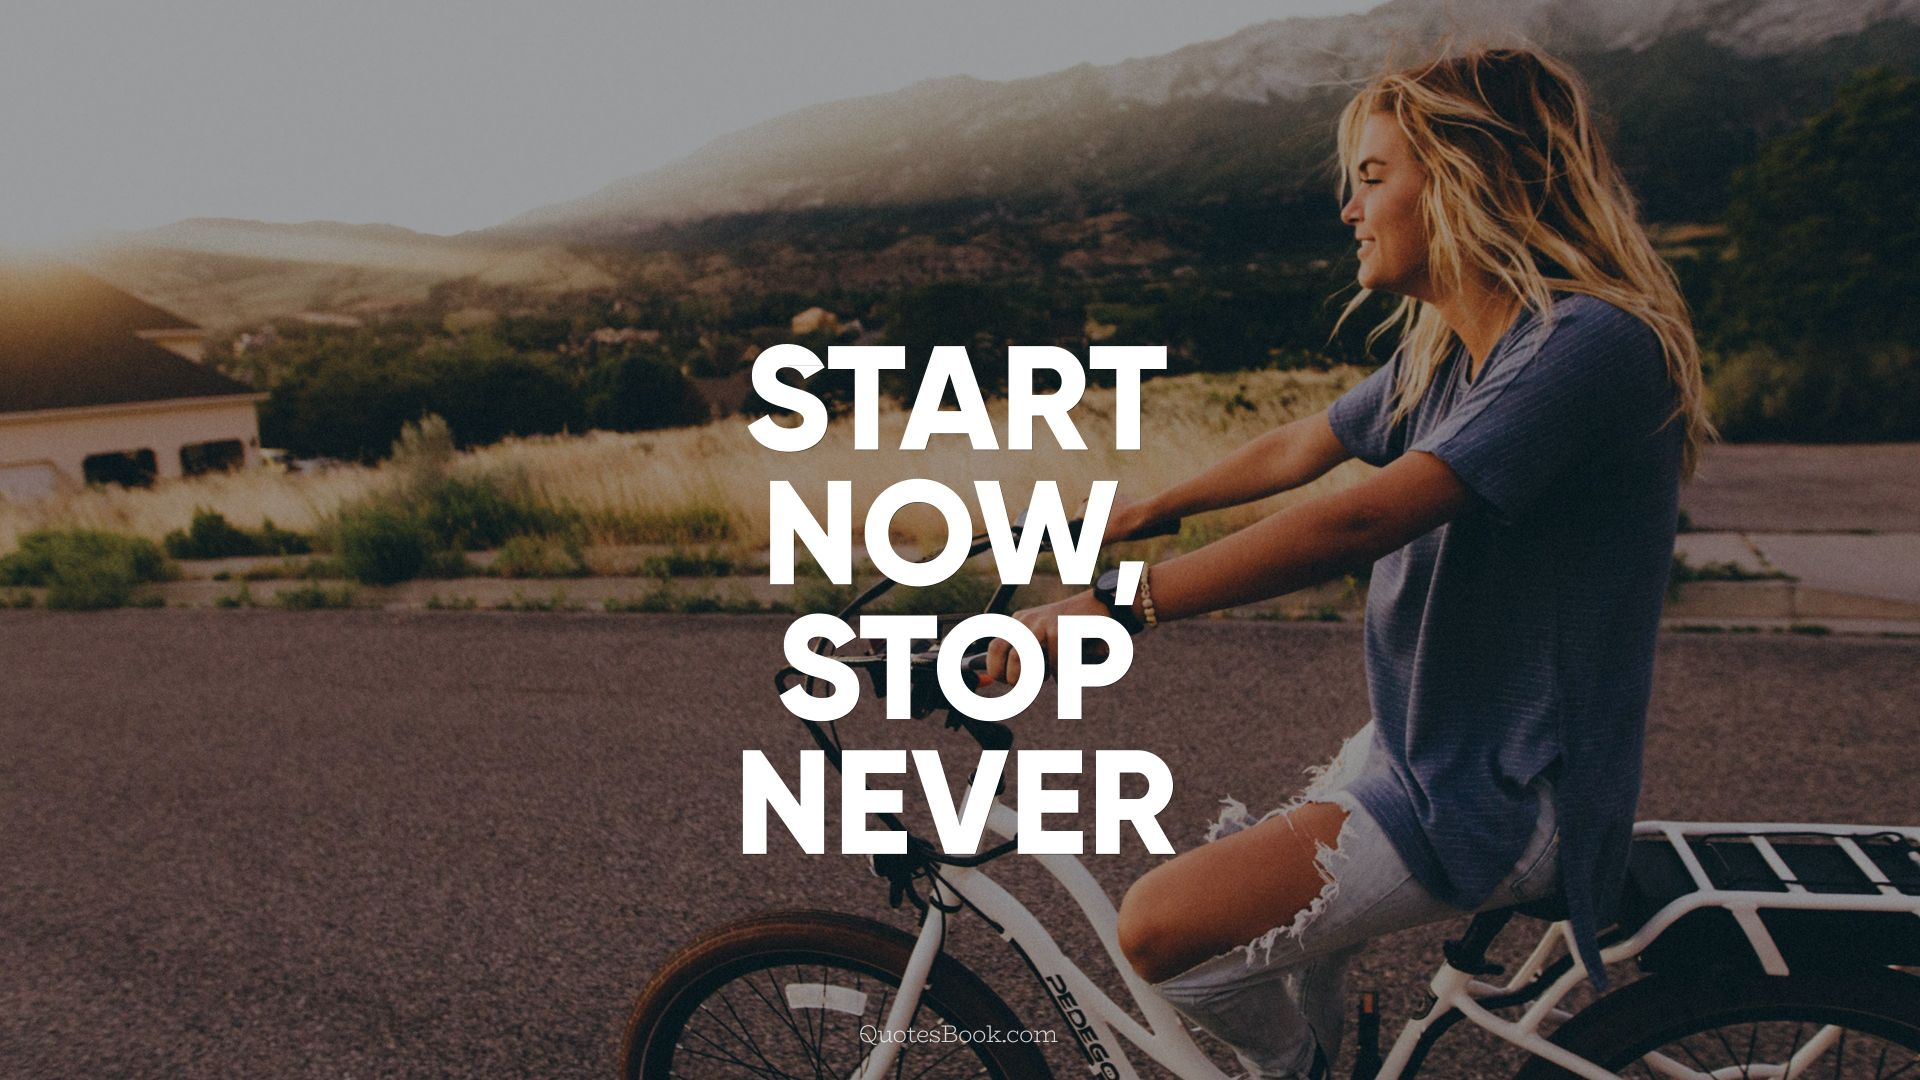 Start now, stop never